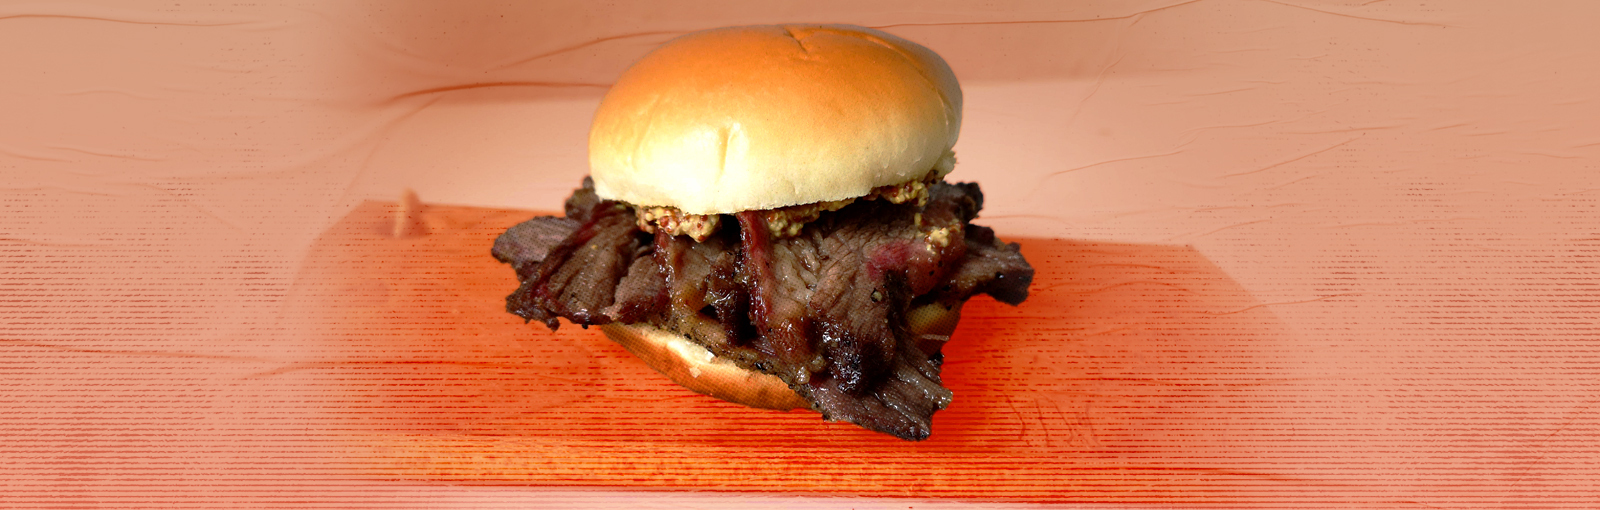 How To Make Brisket Without A Smoker This Fourth Of July Weekend